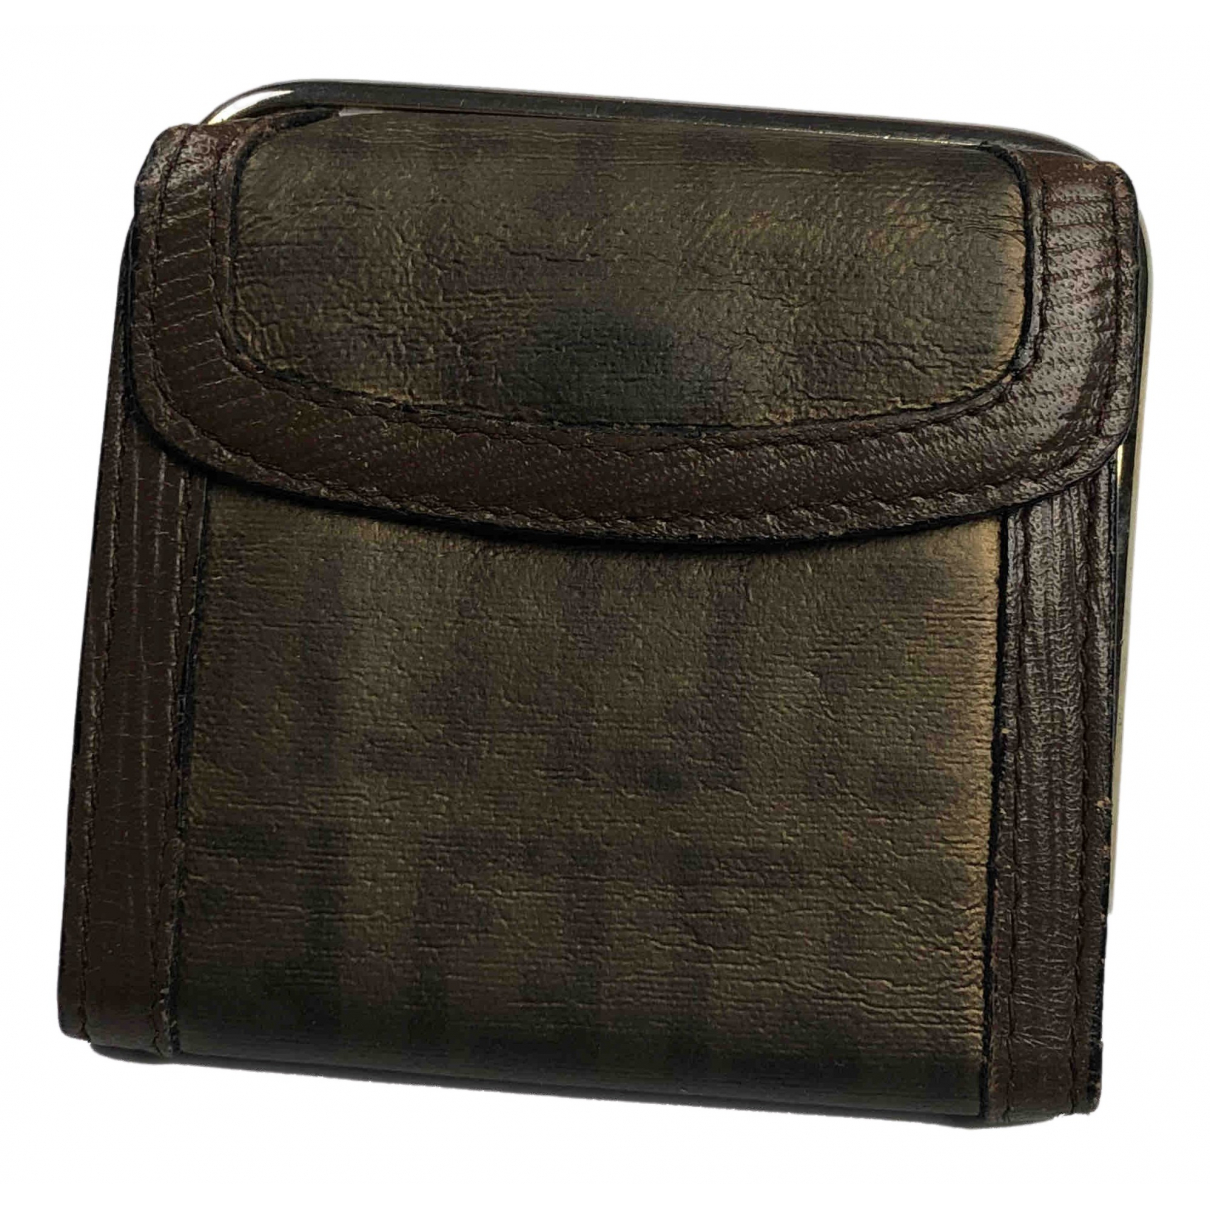 Fendi N Green Leather Purses, wallet & cases for Women N